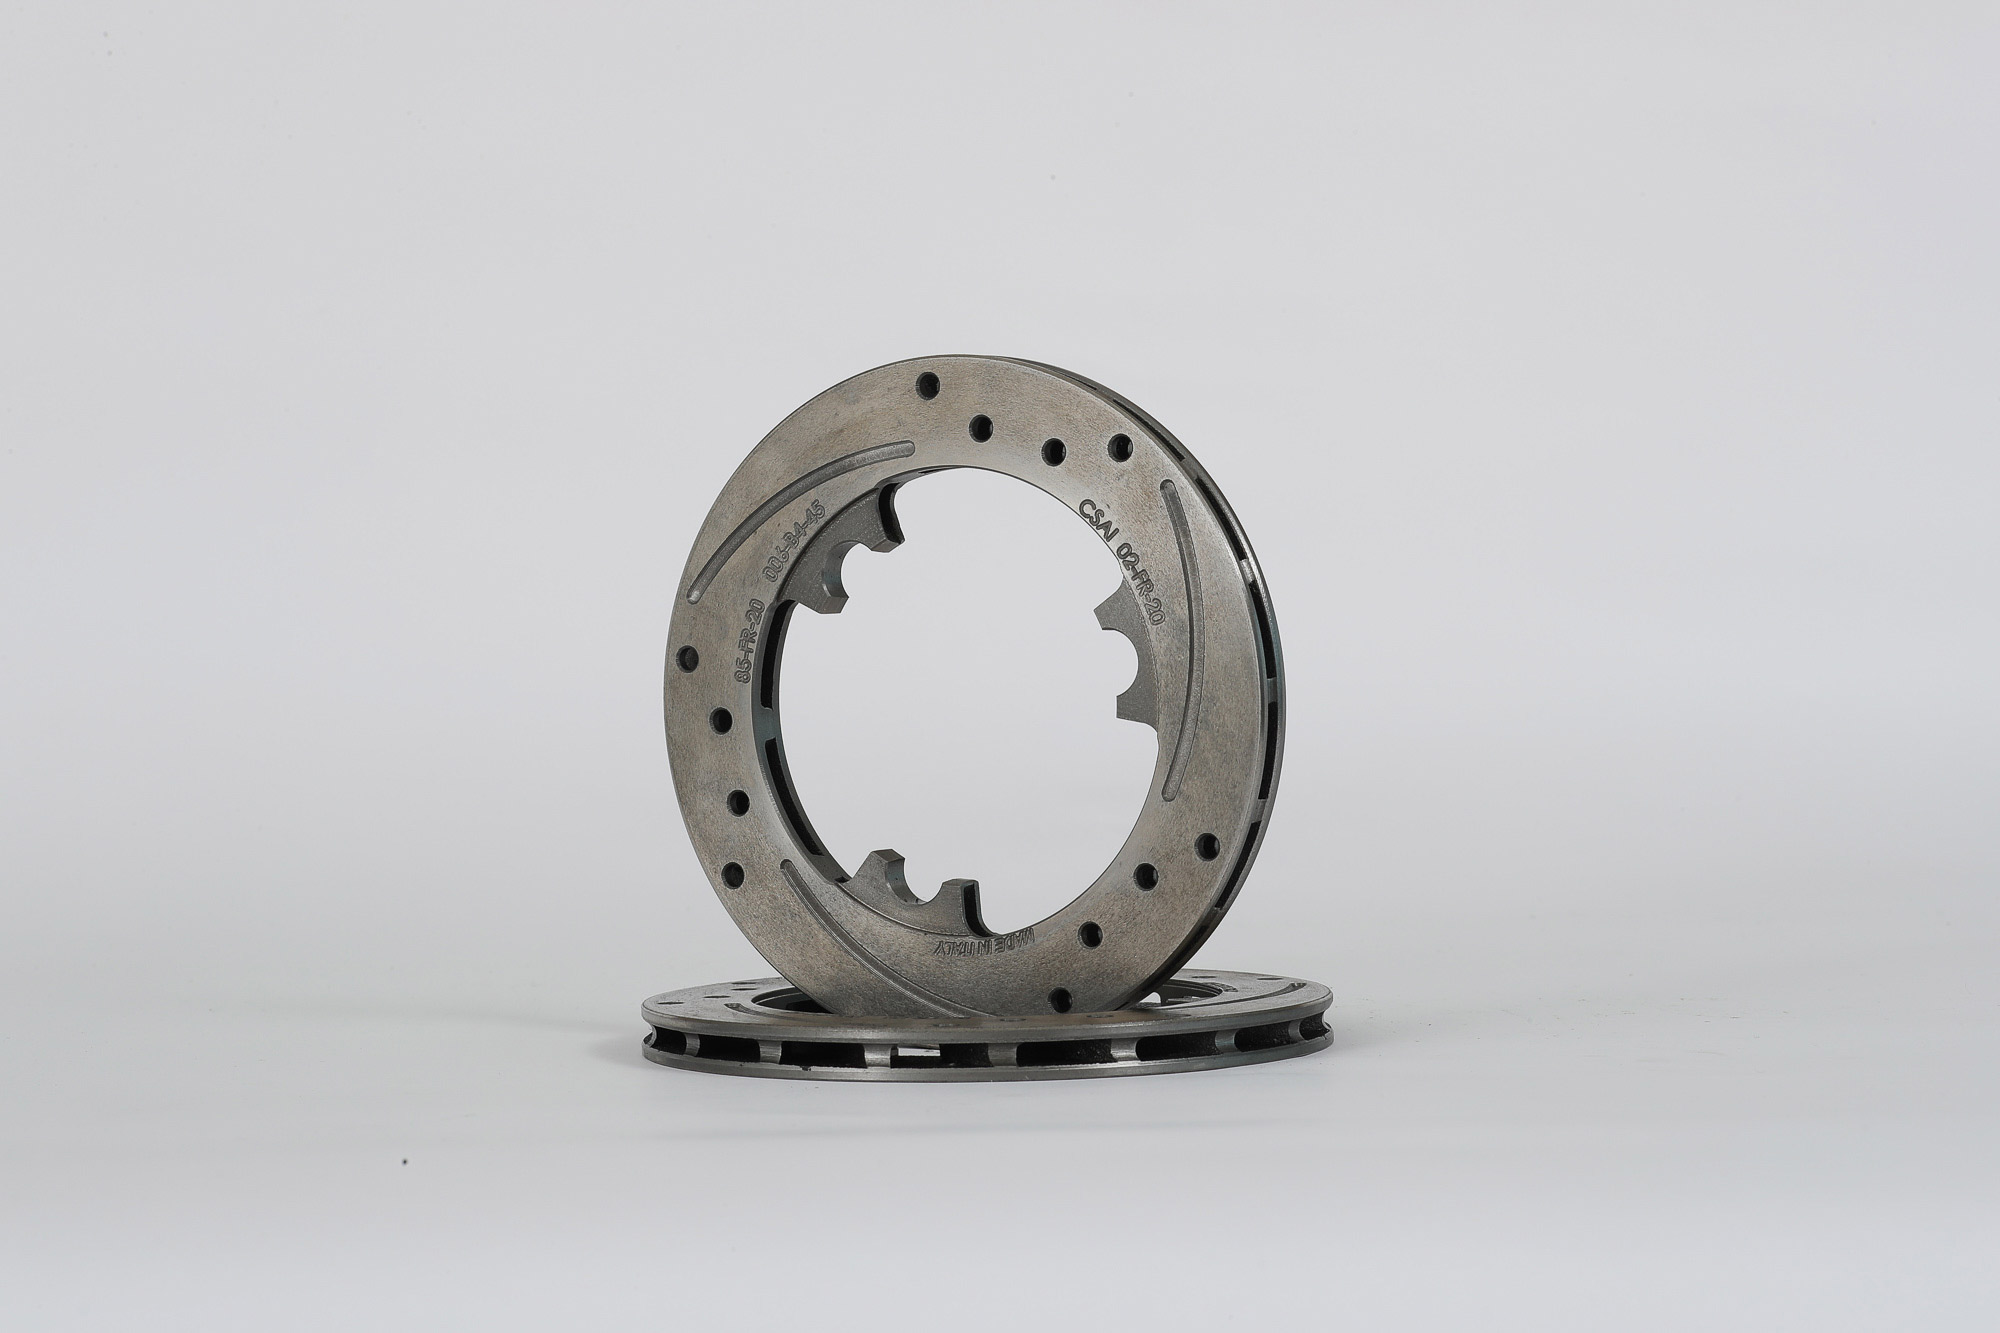 RBS.V2 and STR.V2 braking system discs: greater choice for drivers